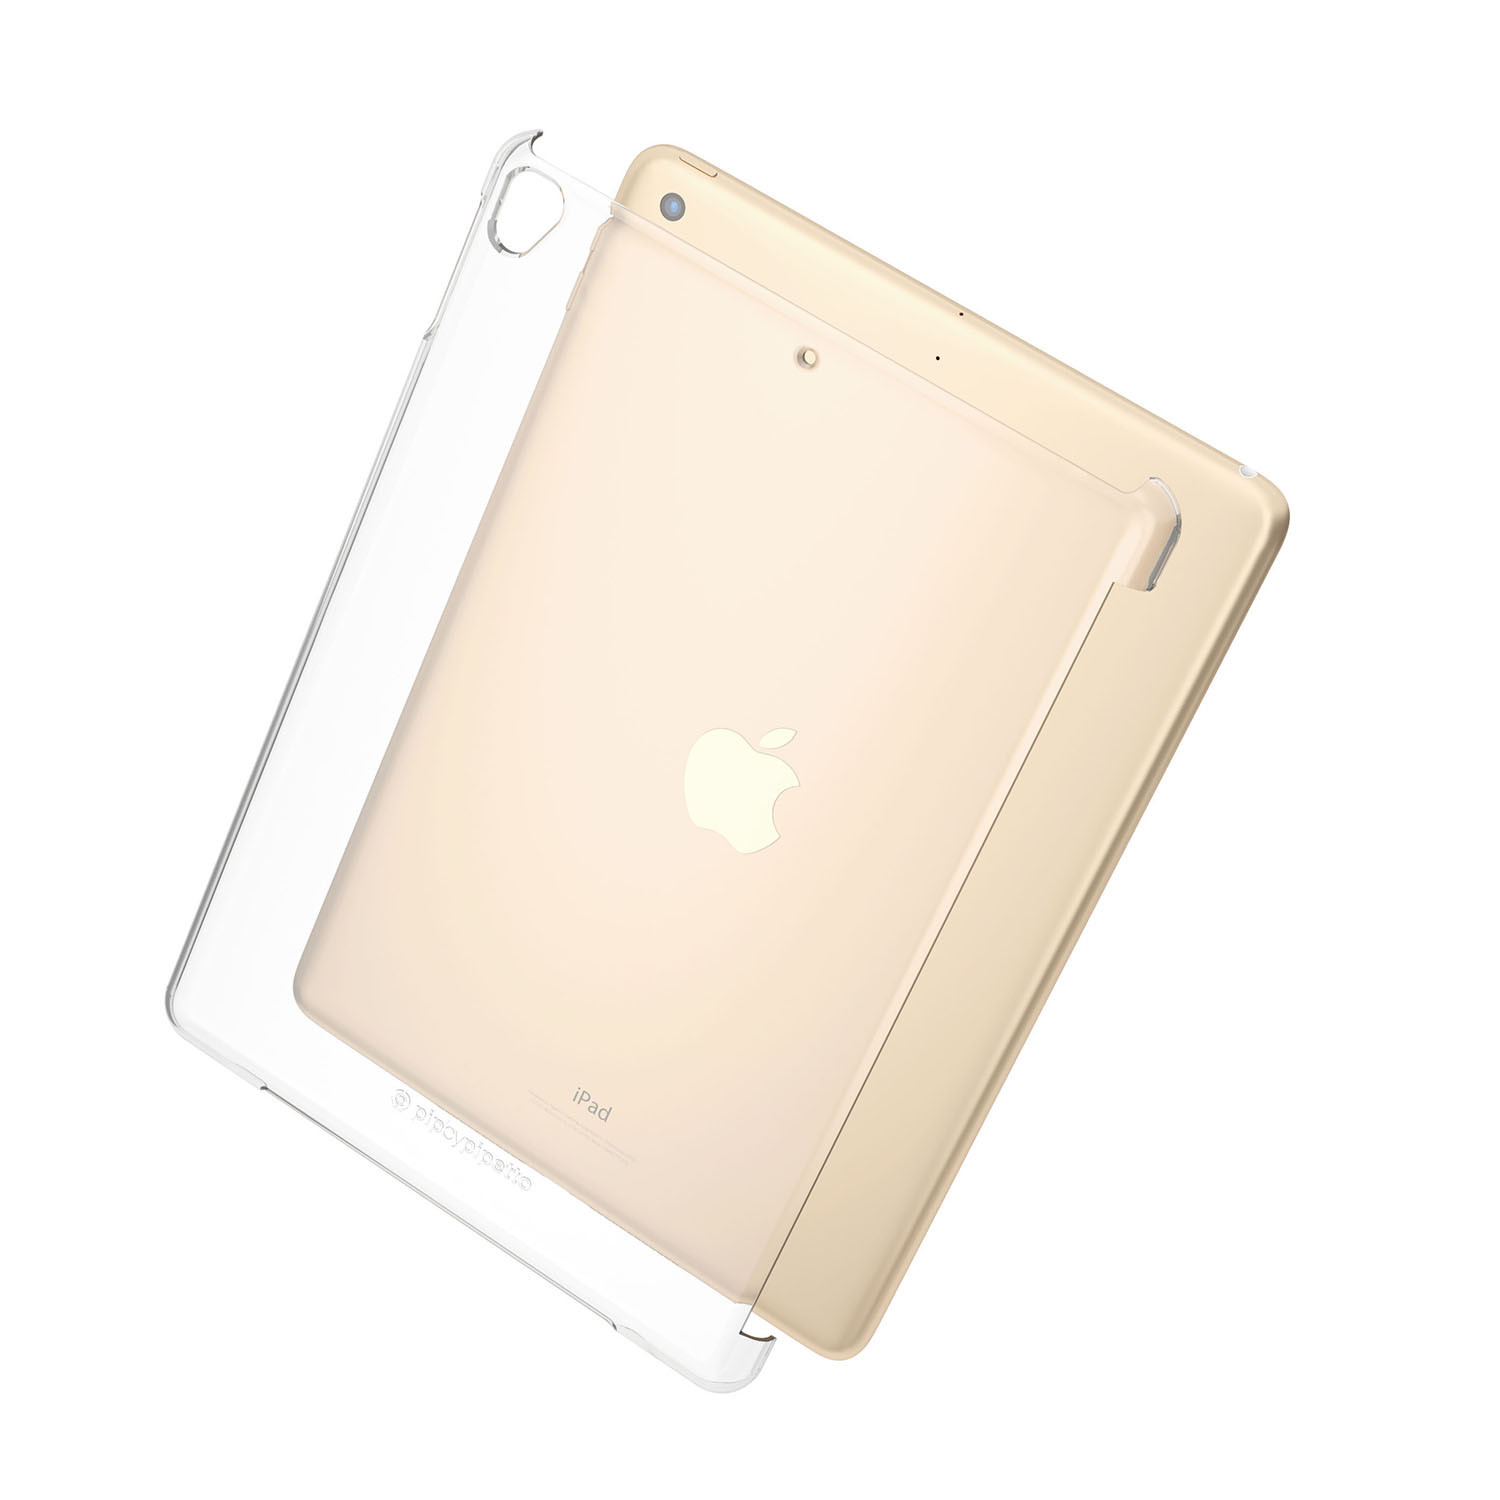 competitive price 5e106 5000c Smart Cover Compatible iPad 9.7 (2018) Protective Clear Shell Cover (Air 1,  Air 2, Pro 9.7 & iPad 9.7 2017 Compatible)